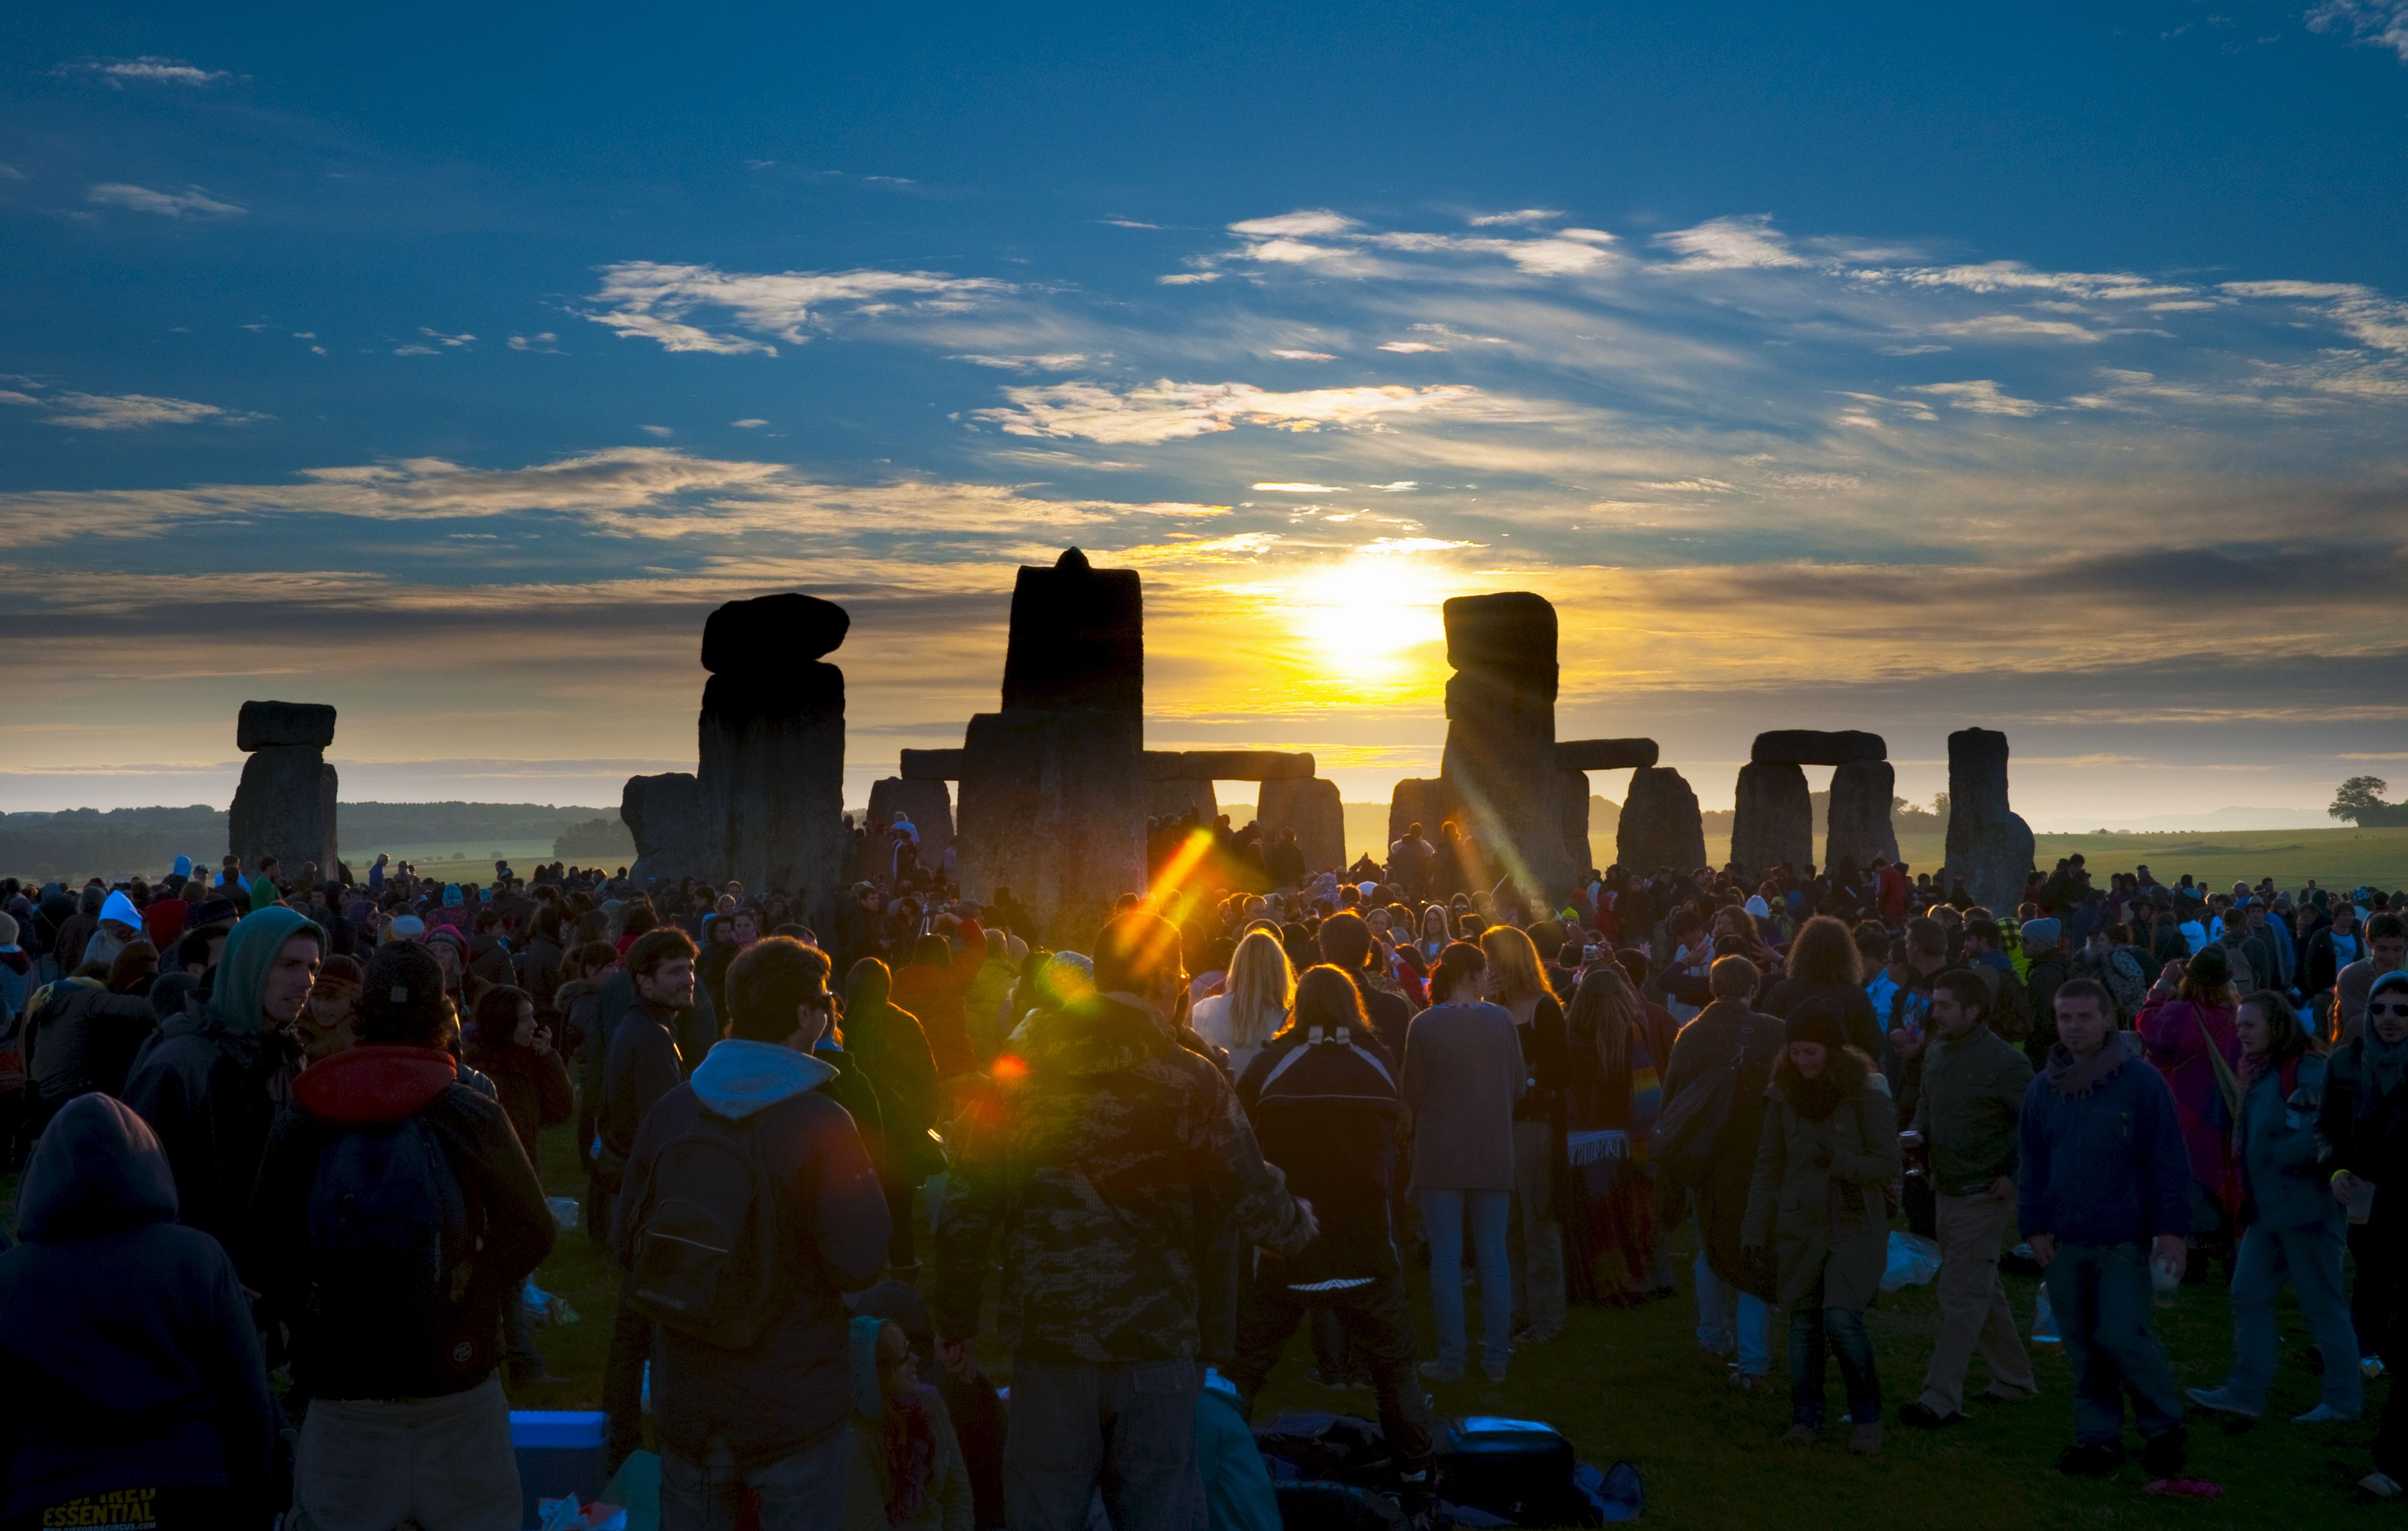 History of Litha, the Pagan Summer Solstice